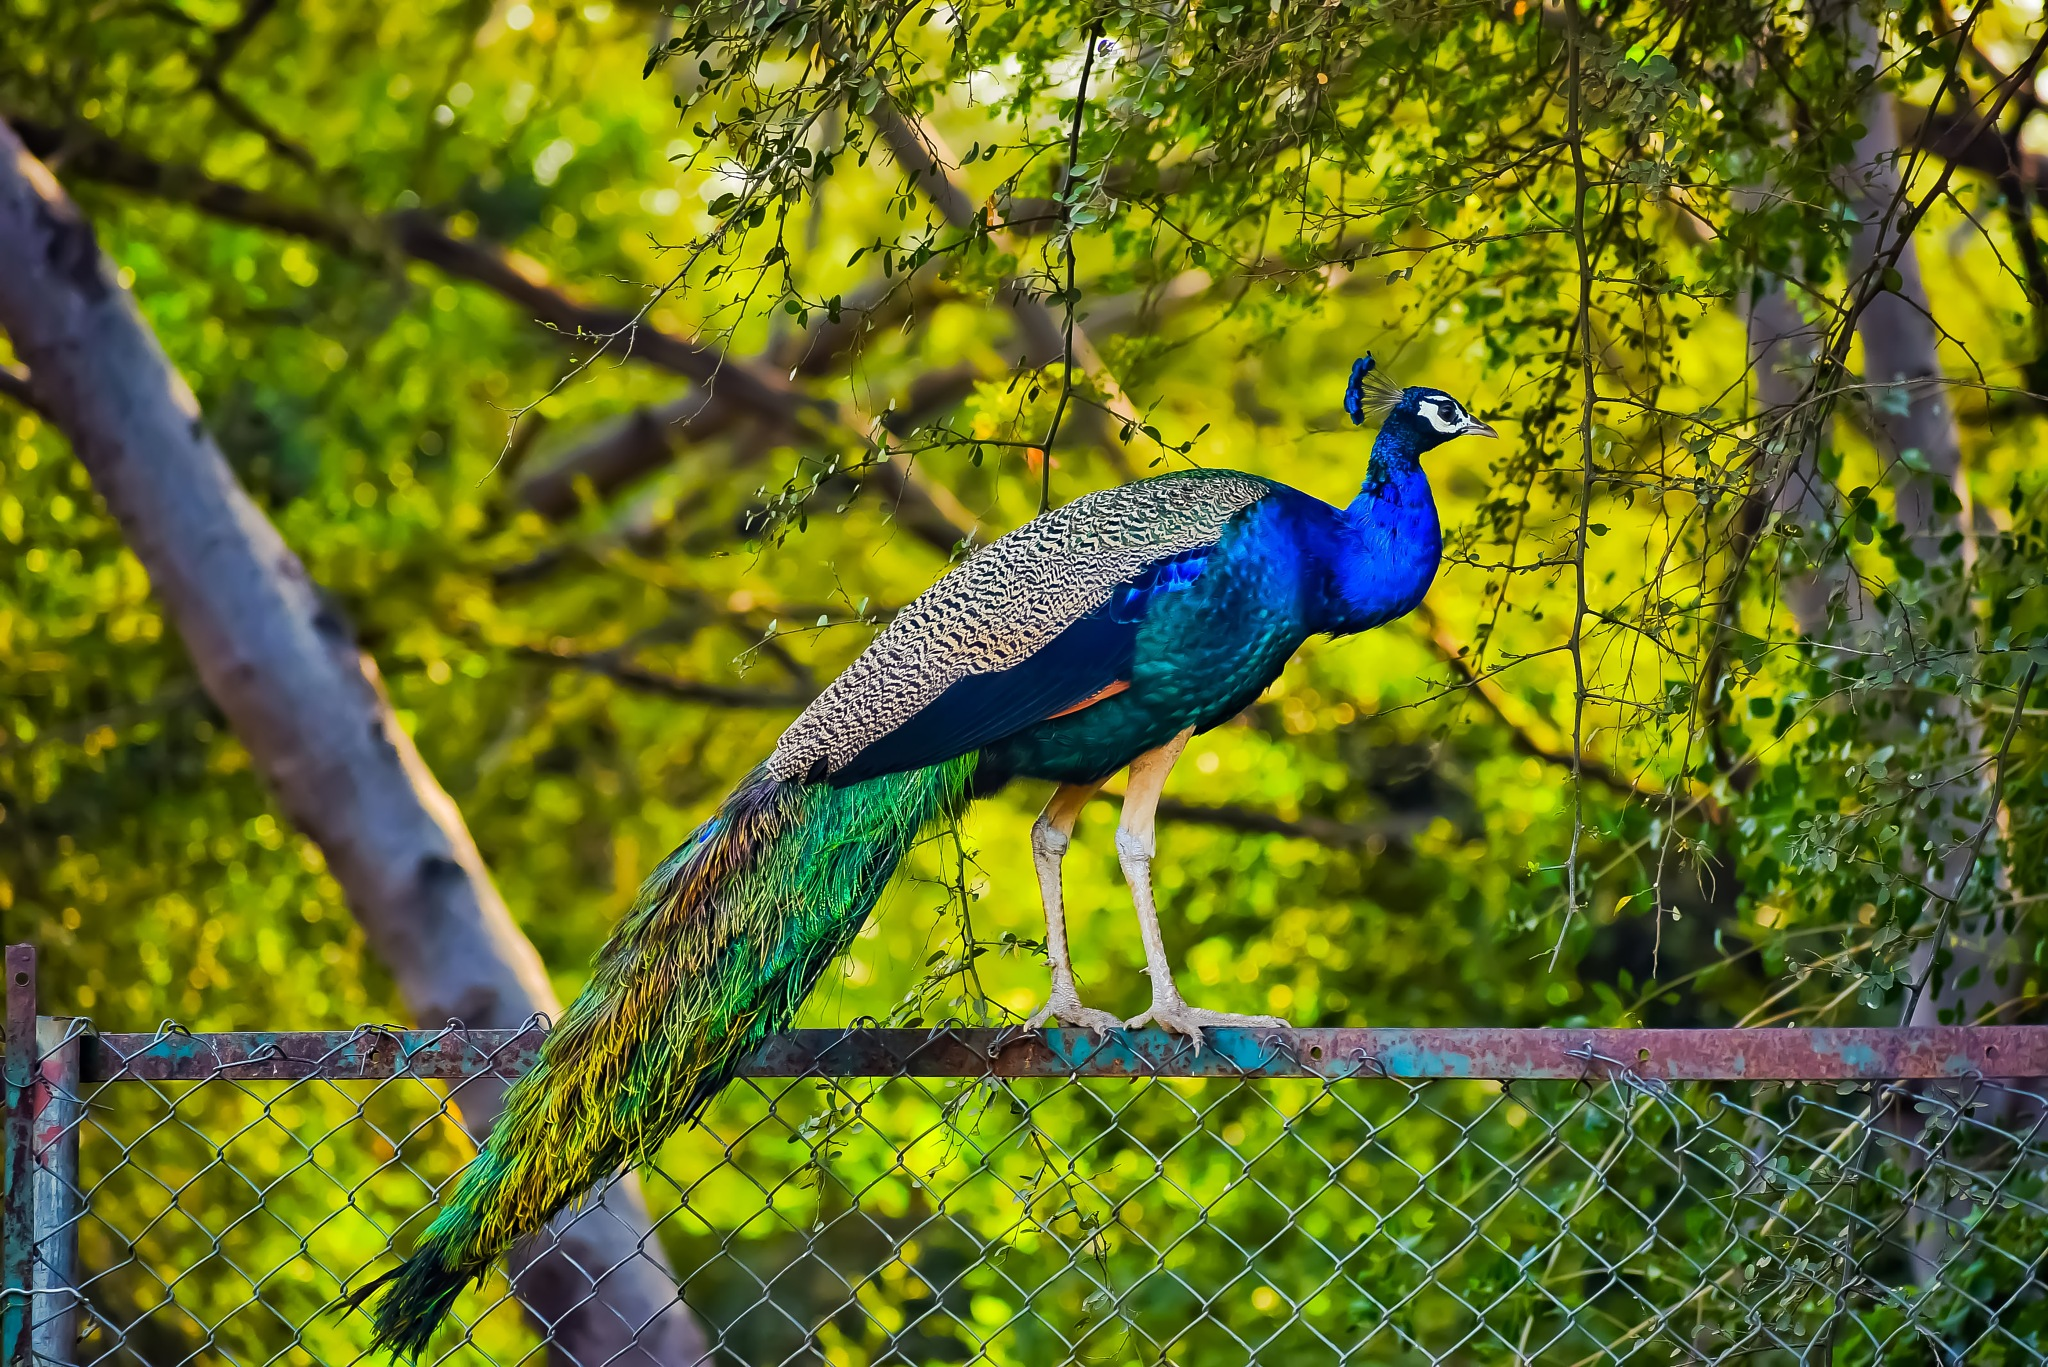 Indian Peafowl by Mehul Chaudhary